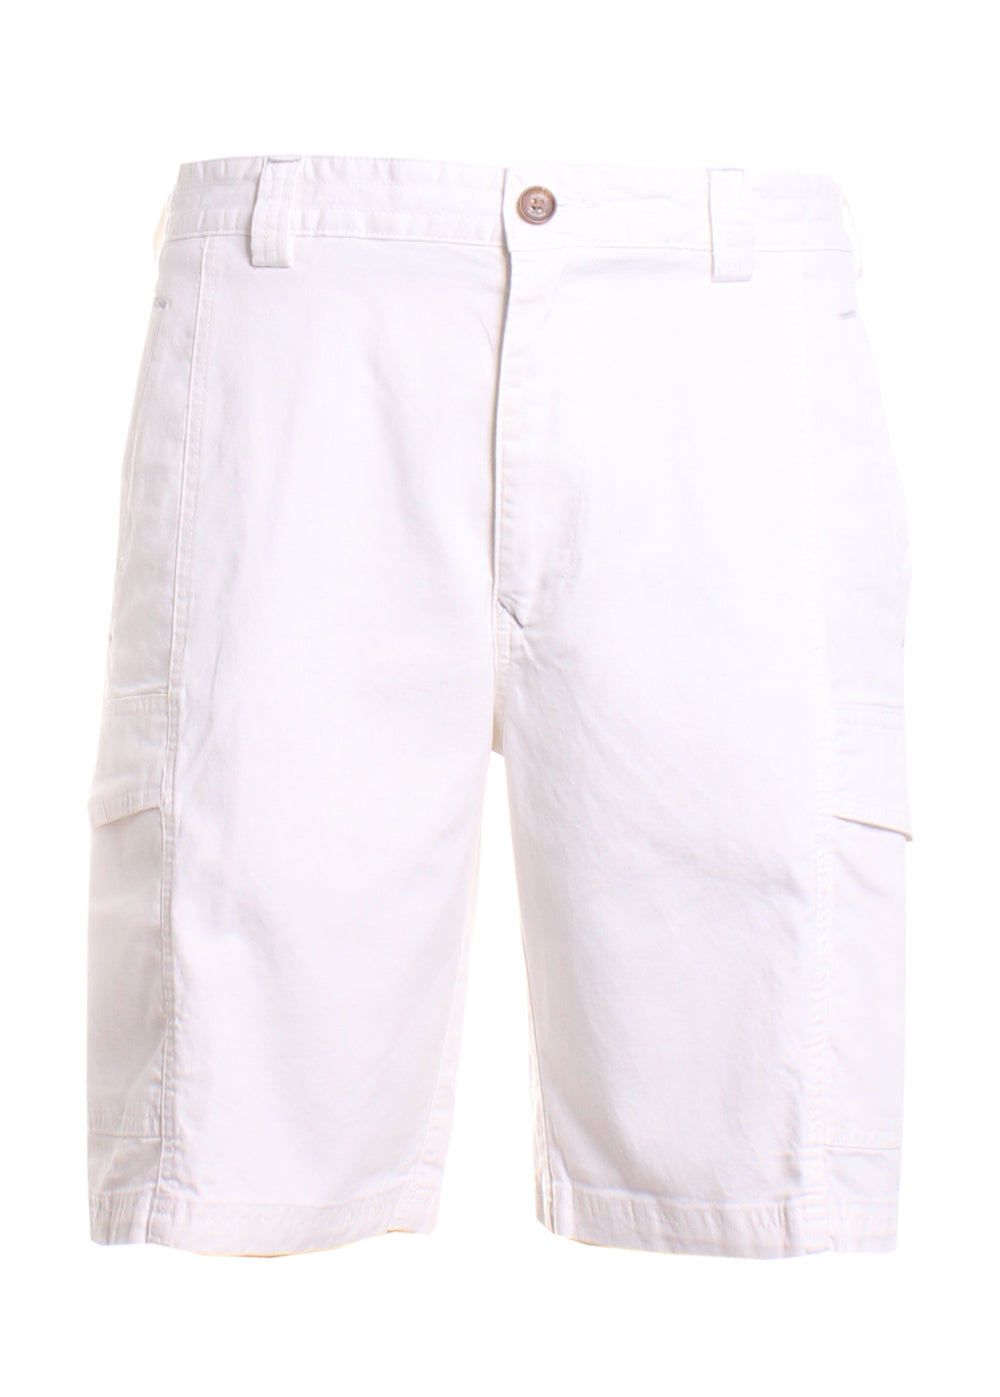 Tommy Bahama Key Isles Cargo Shorts in Coconut